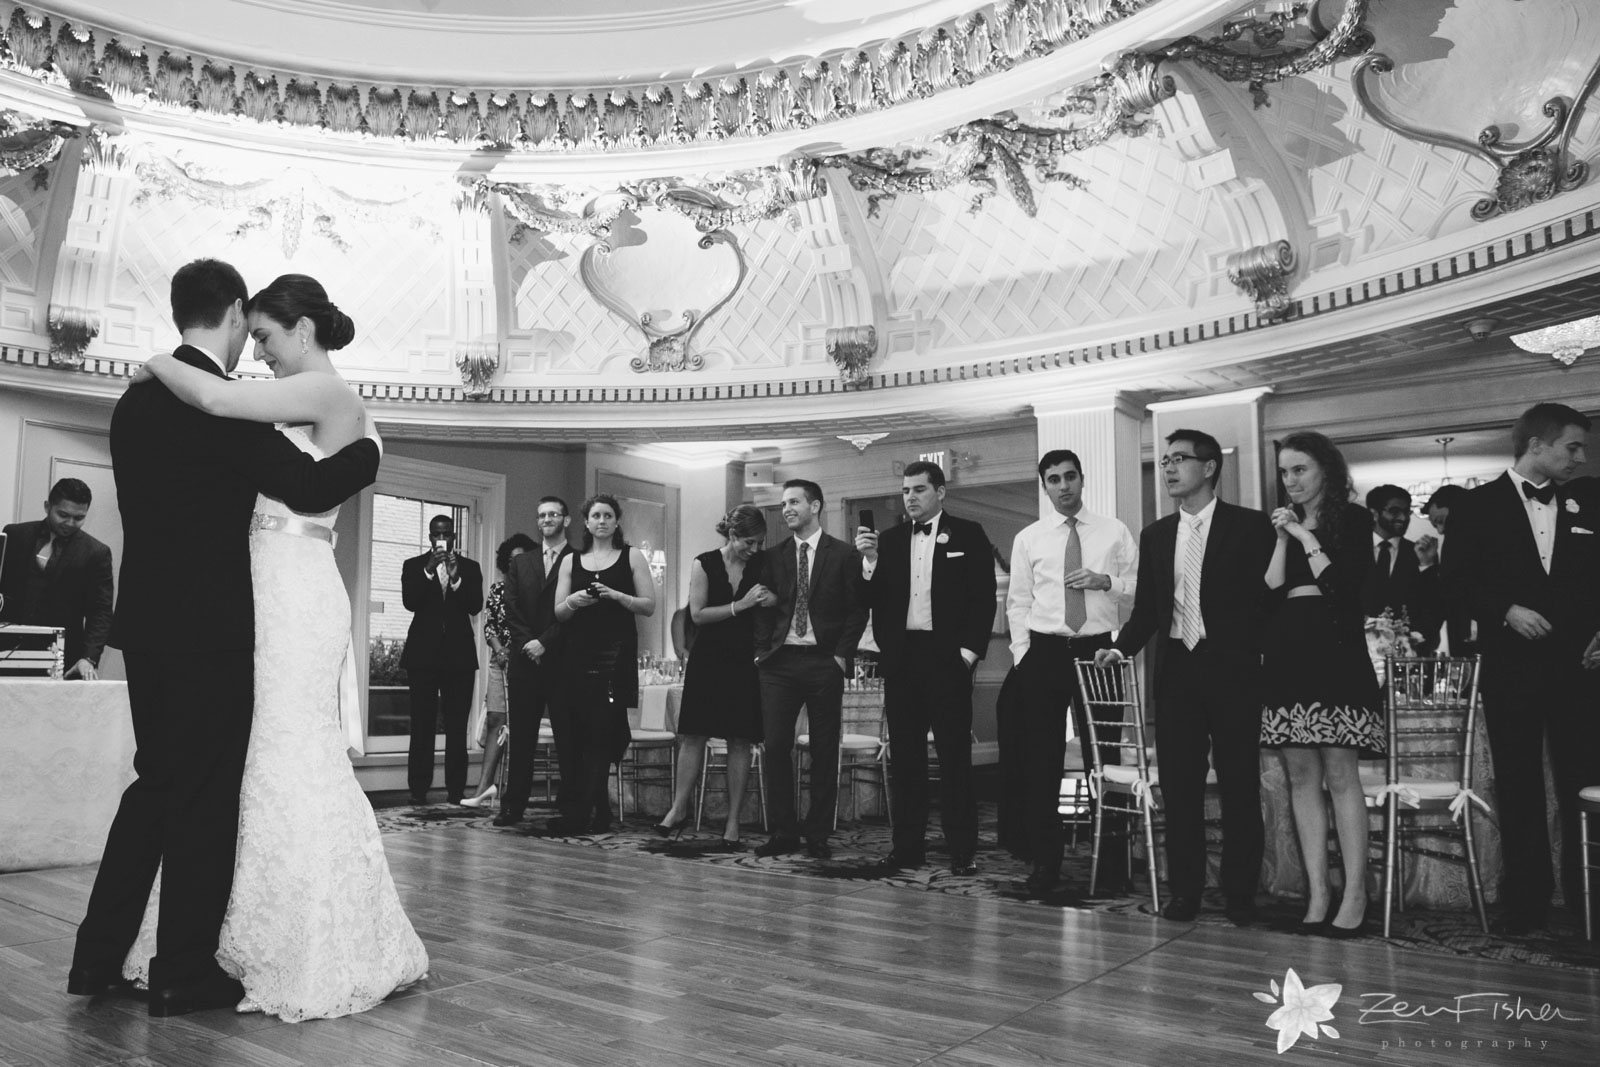 Bride and groom hold each other closely, share their first dance in the middle of the reception hall